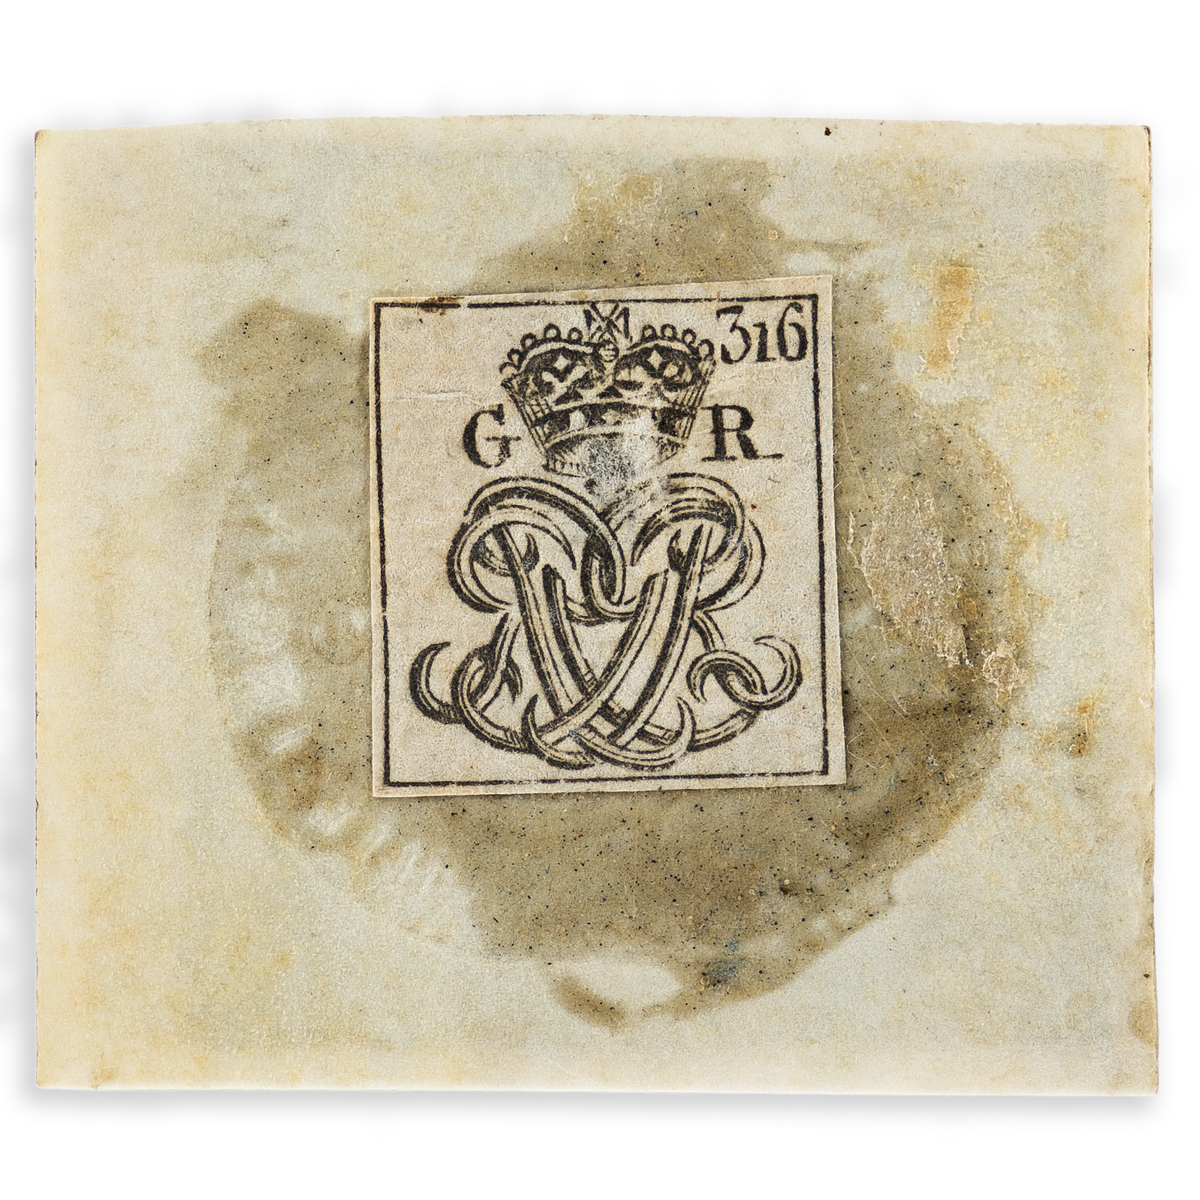 (AMERICAN-REVOLUTION--PRELUDE)-Stamp-from-the-Stamp-Act-of-1